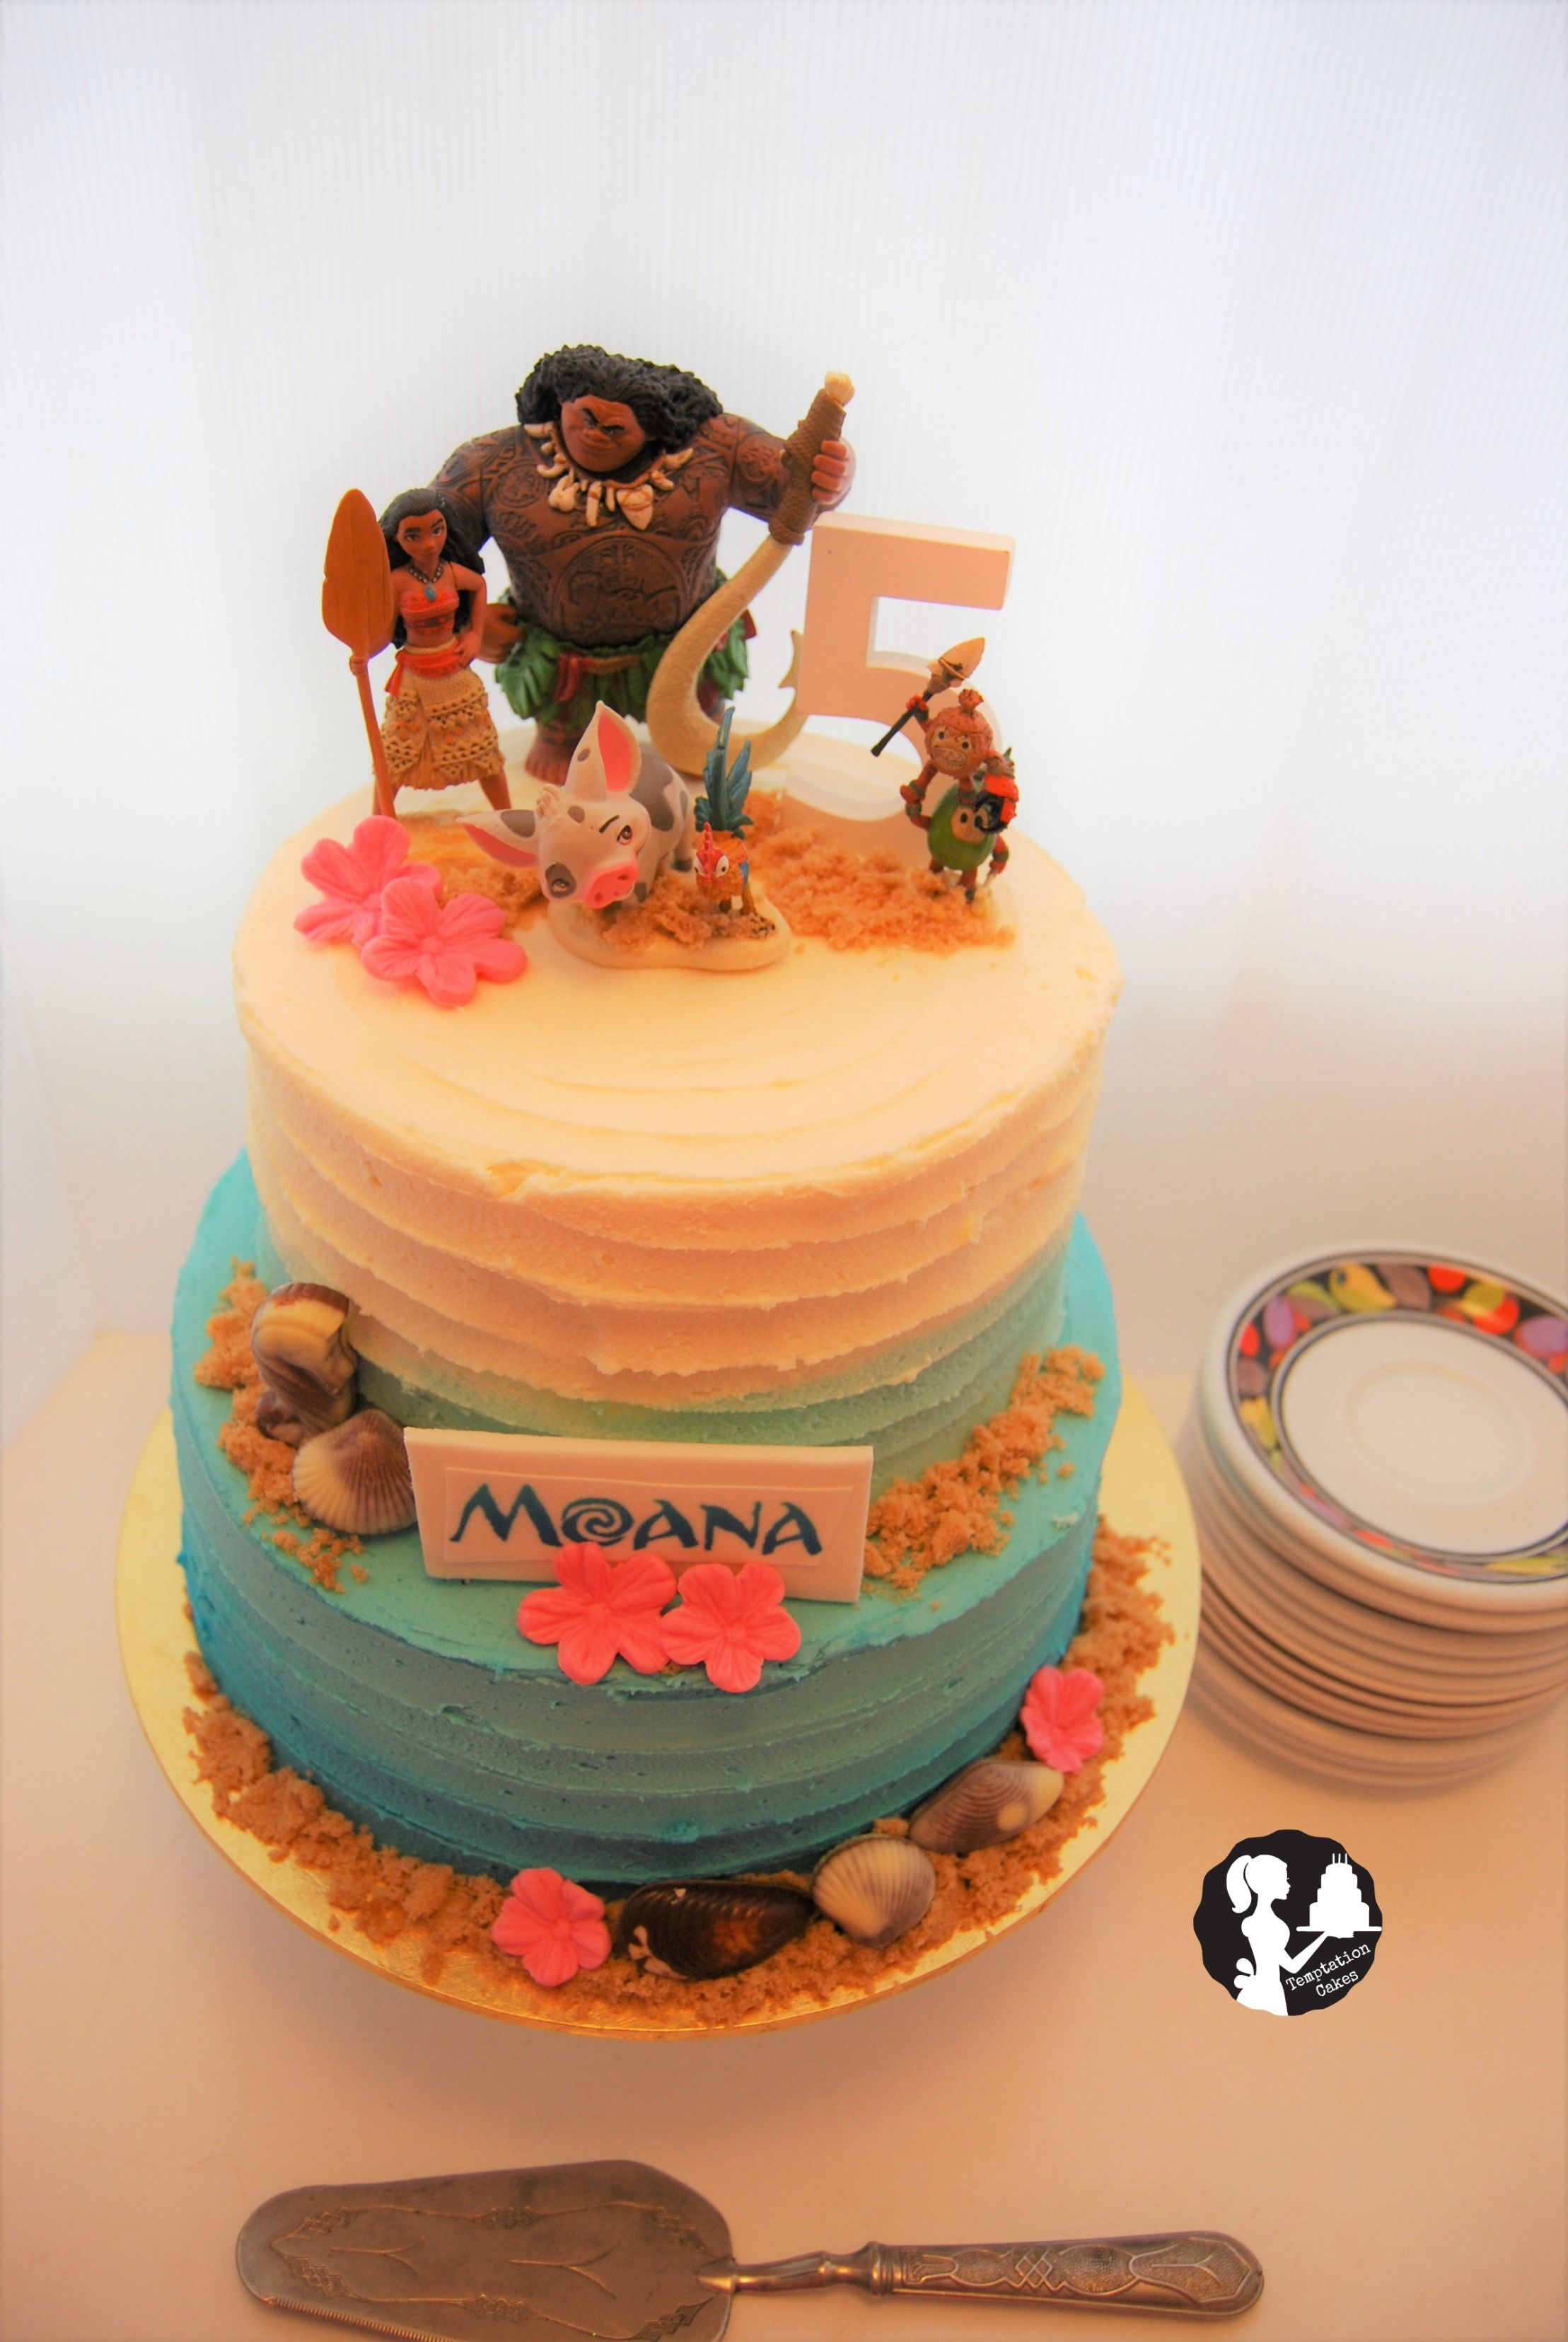 birthday and wedding cakes auckland moana cake auckland 350 moana birthday en 2018 11799